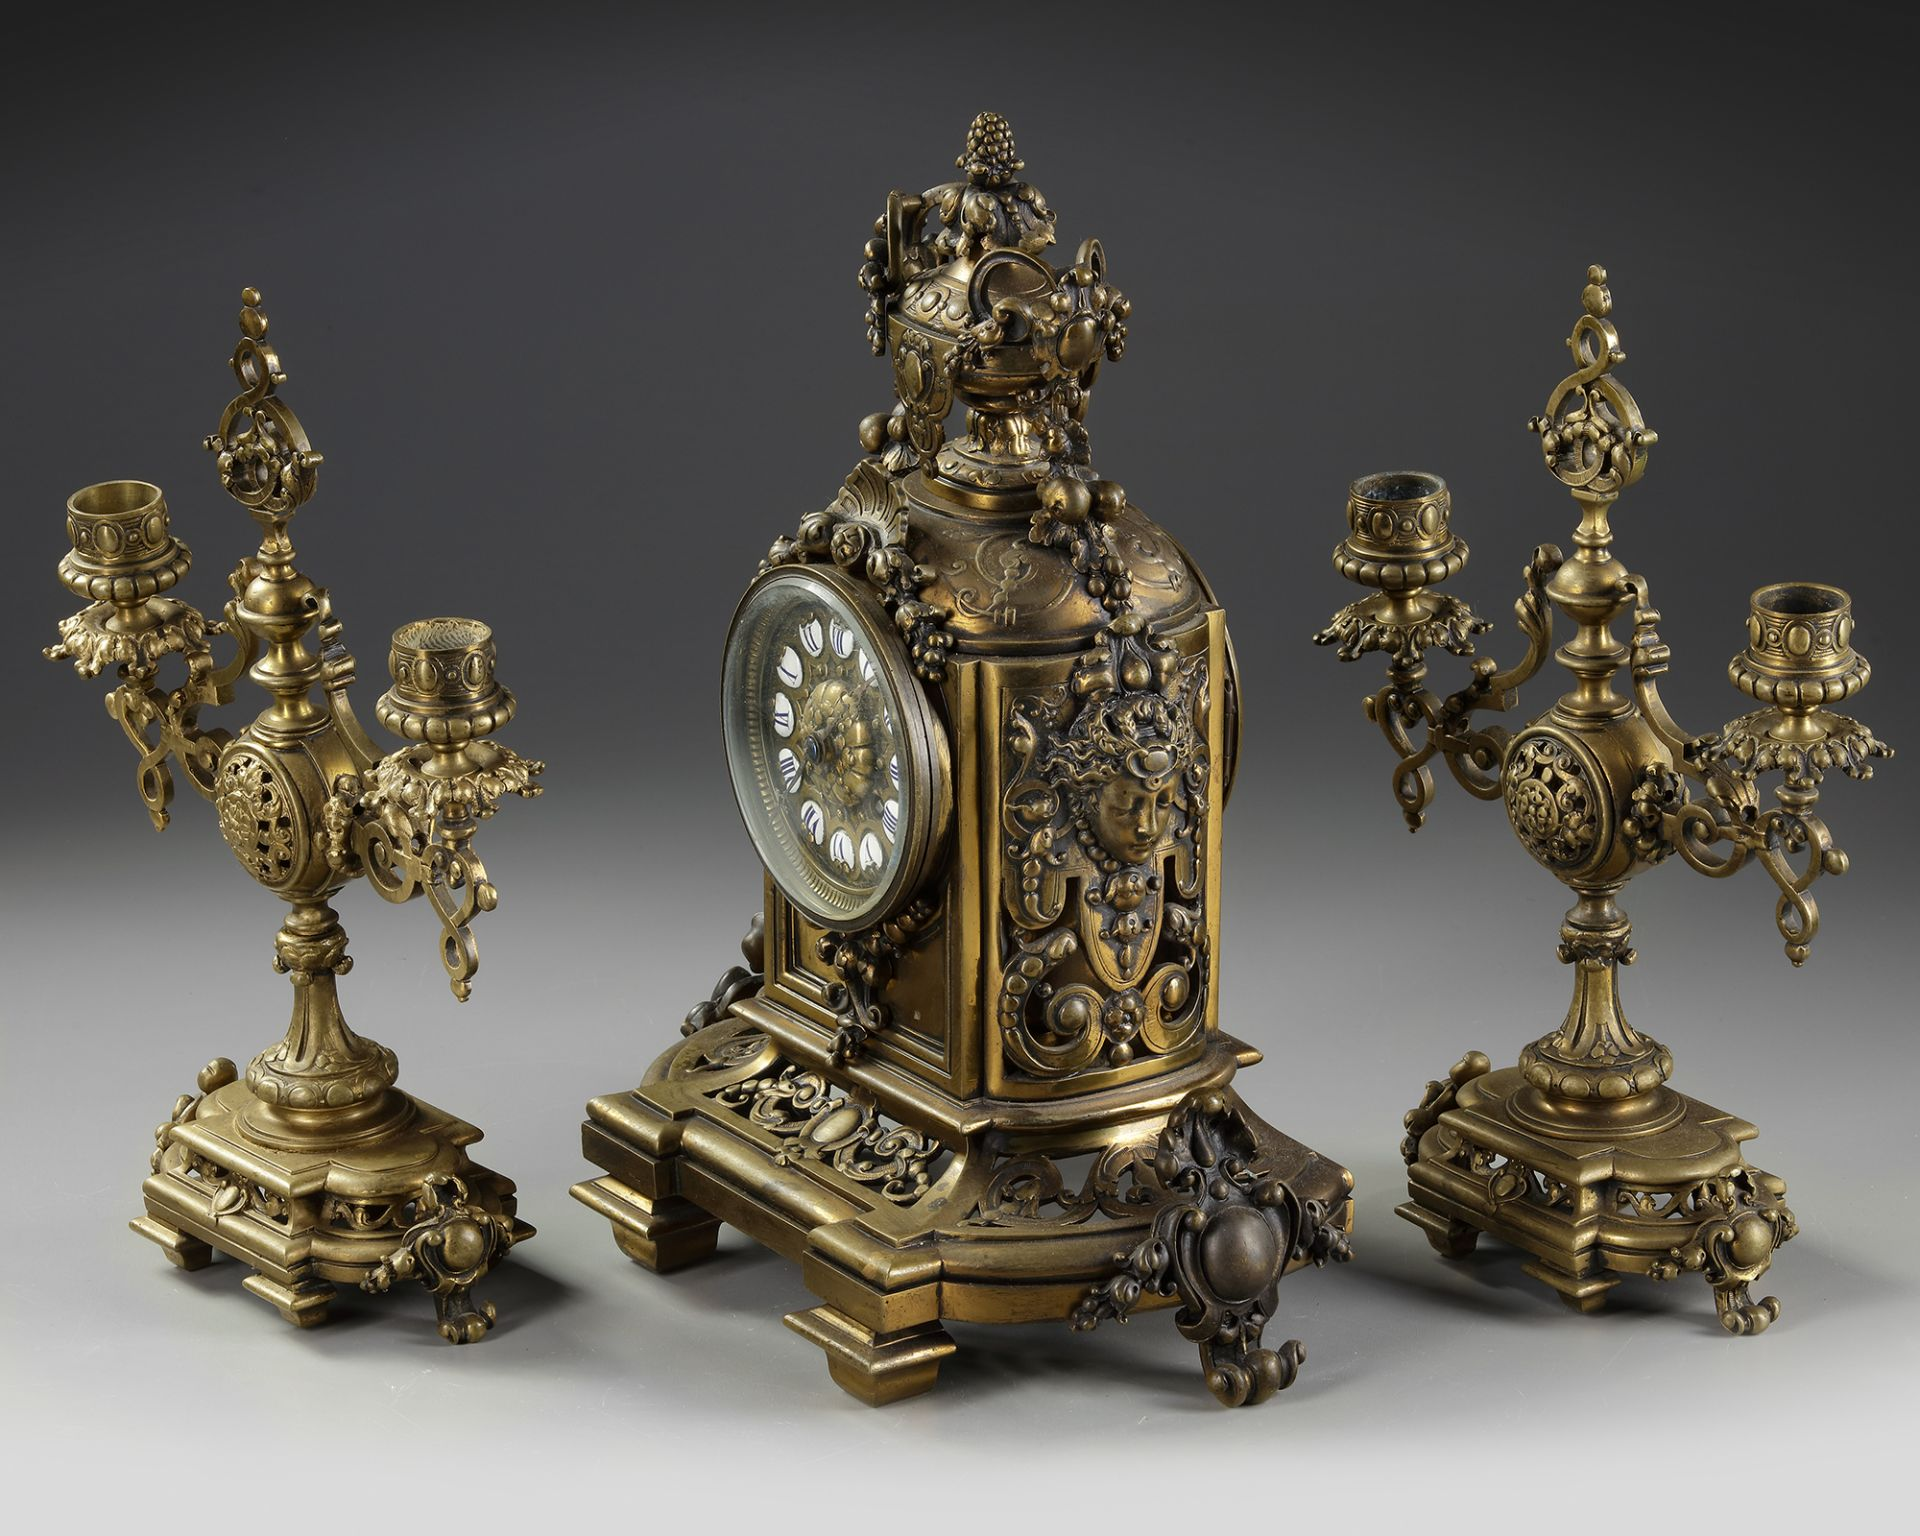 A NEO-RENAISSANCE STYLE BRONZE CLOCK AND CANDLELABRA SET, LATE 19TH CENTURY - Image 2 of 3